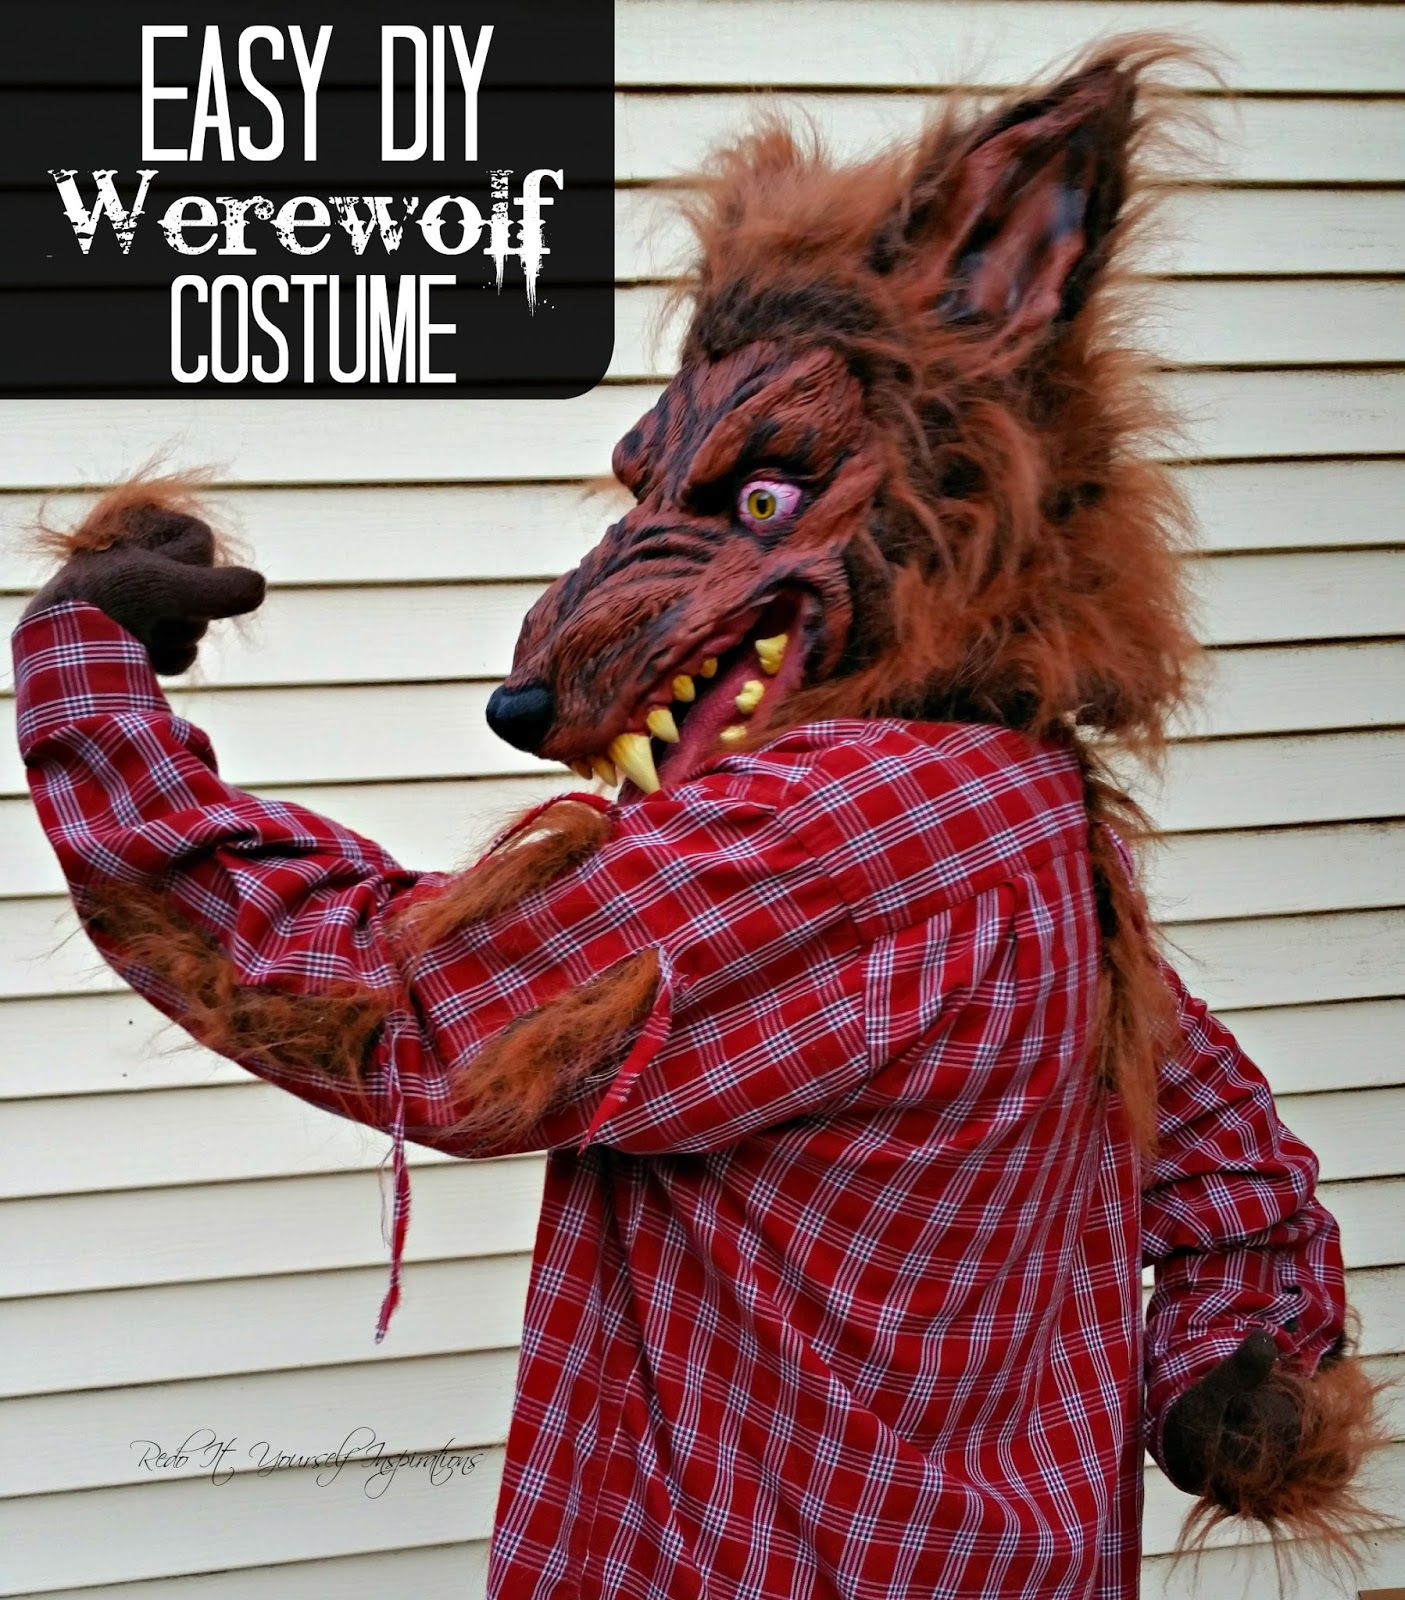 Easy diy werewolf costume redo it yourself inspirations easy diy and solutioingenieria Choice Image